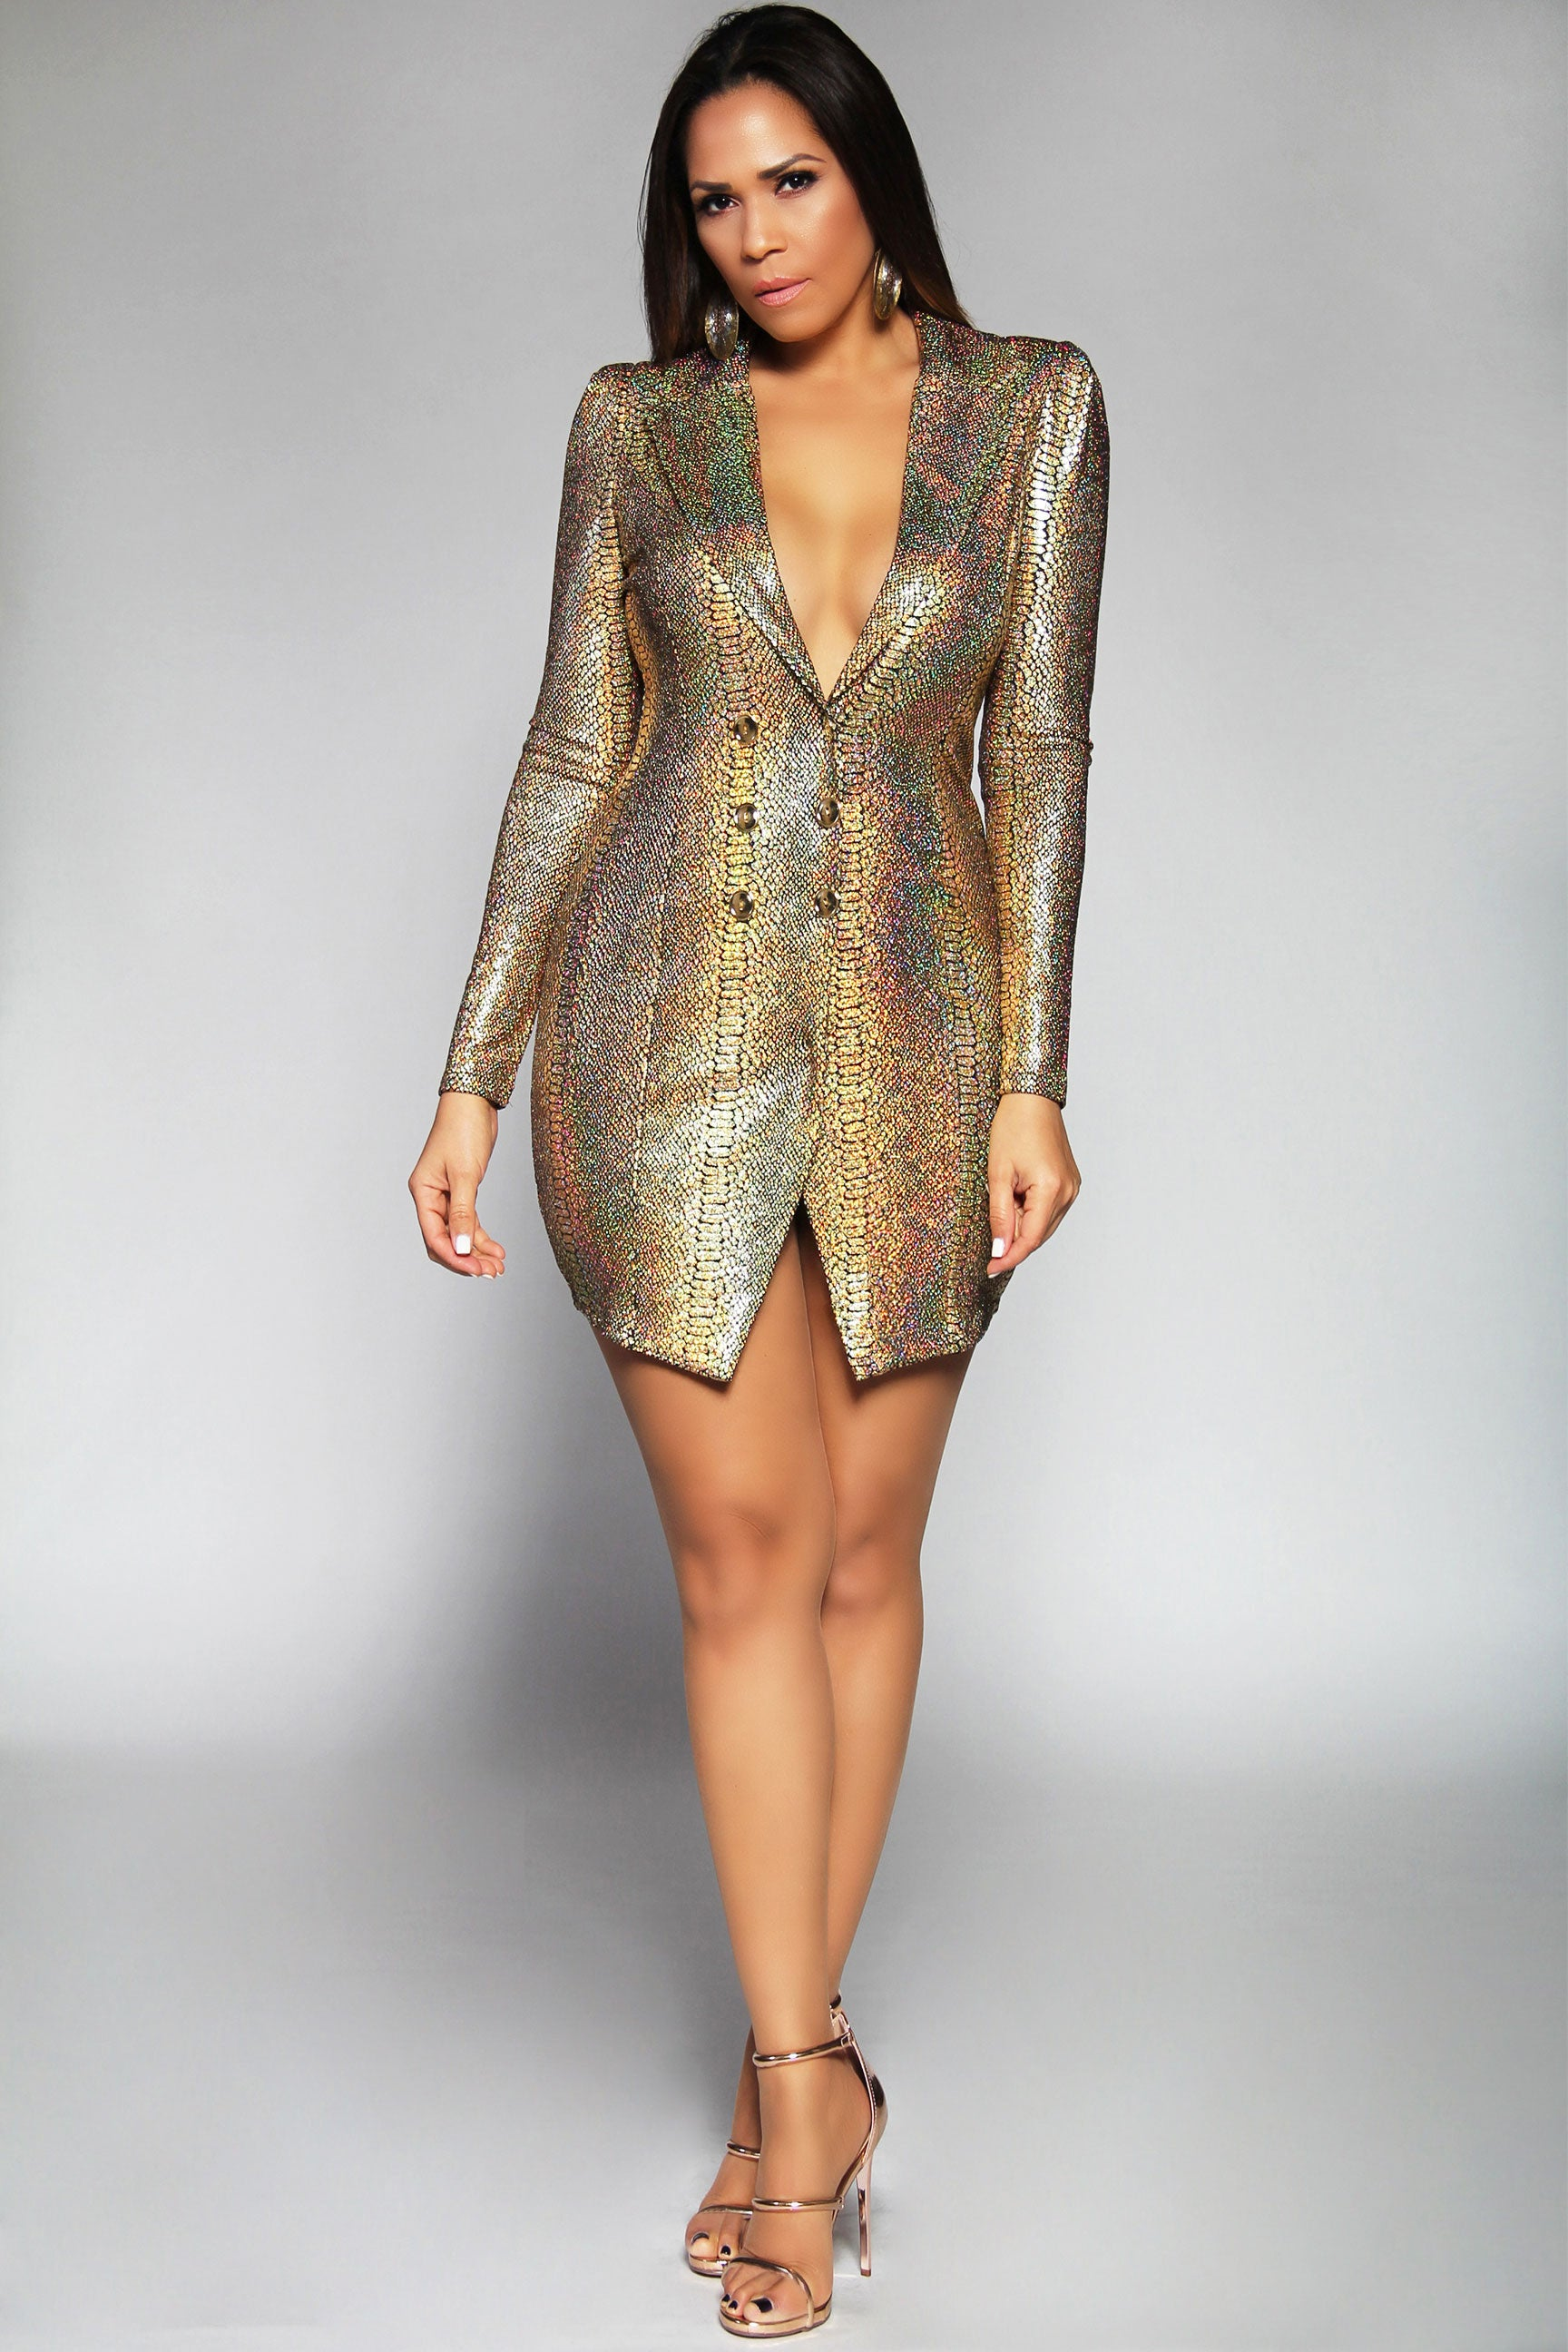 19d532ffc2b8 Emery Gold Metallic Long Sleeve Asymmetrical Blazer Mini Dress ...